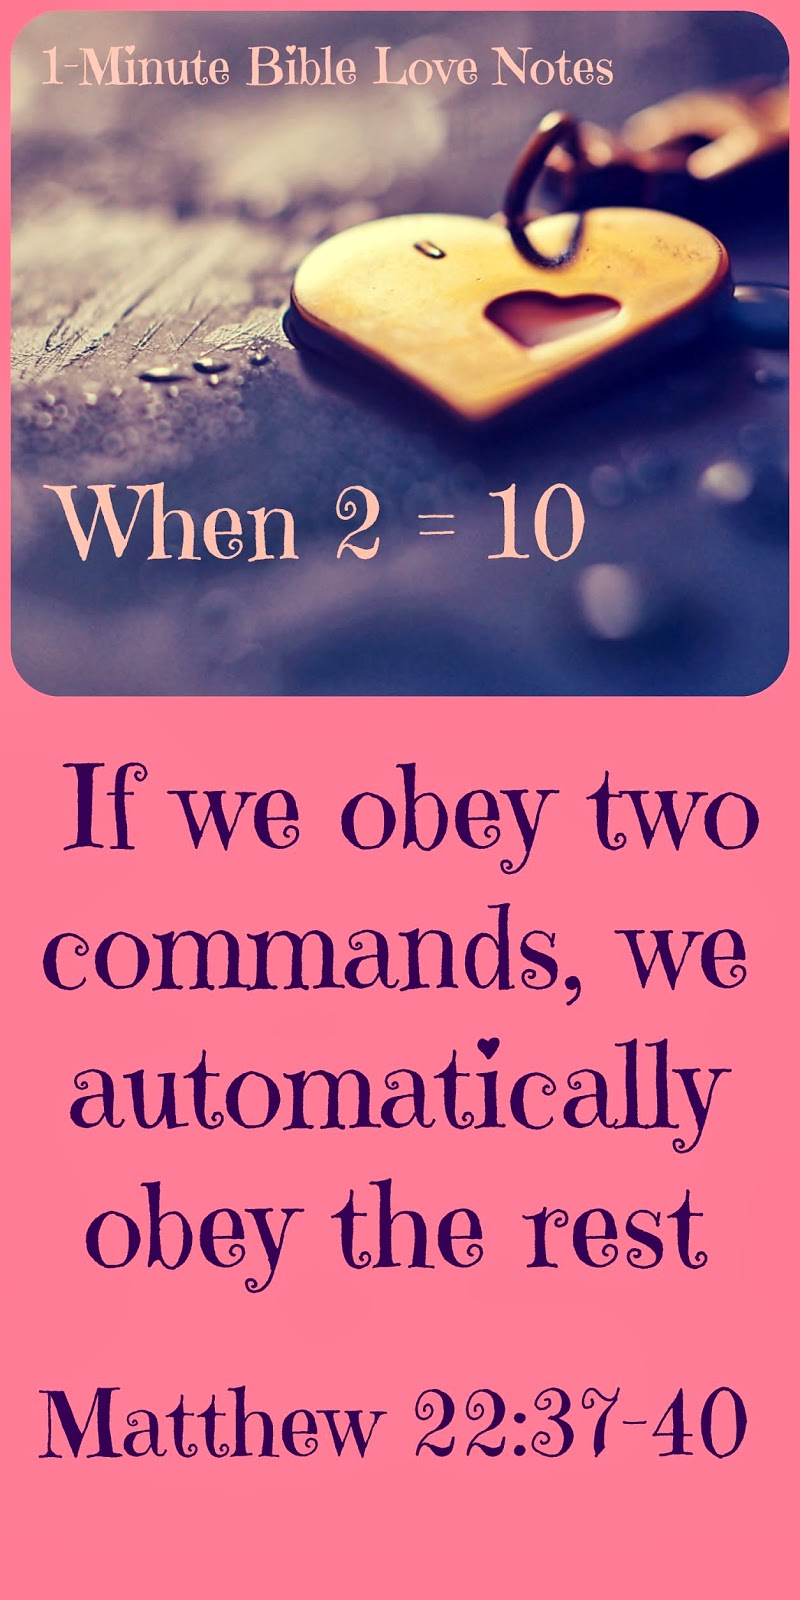 Greatest Commandment, Two greatest commandments, God's Commands